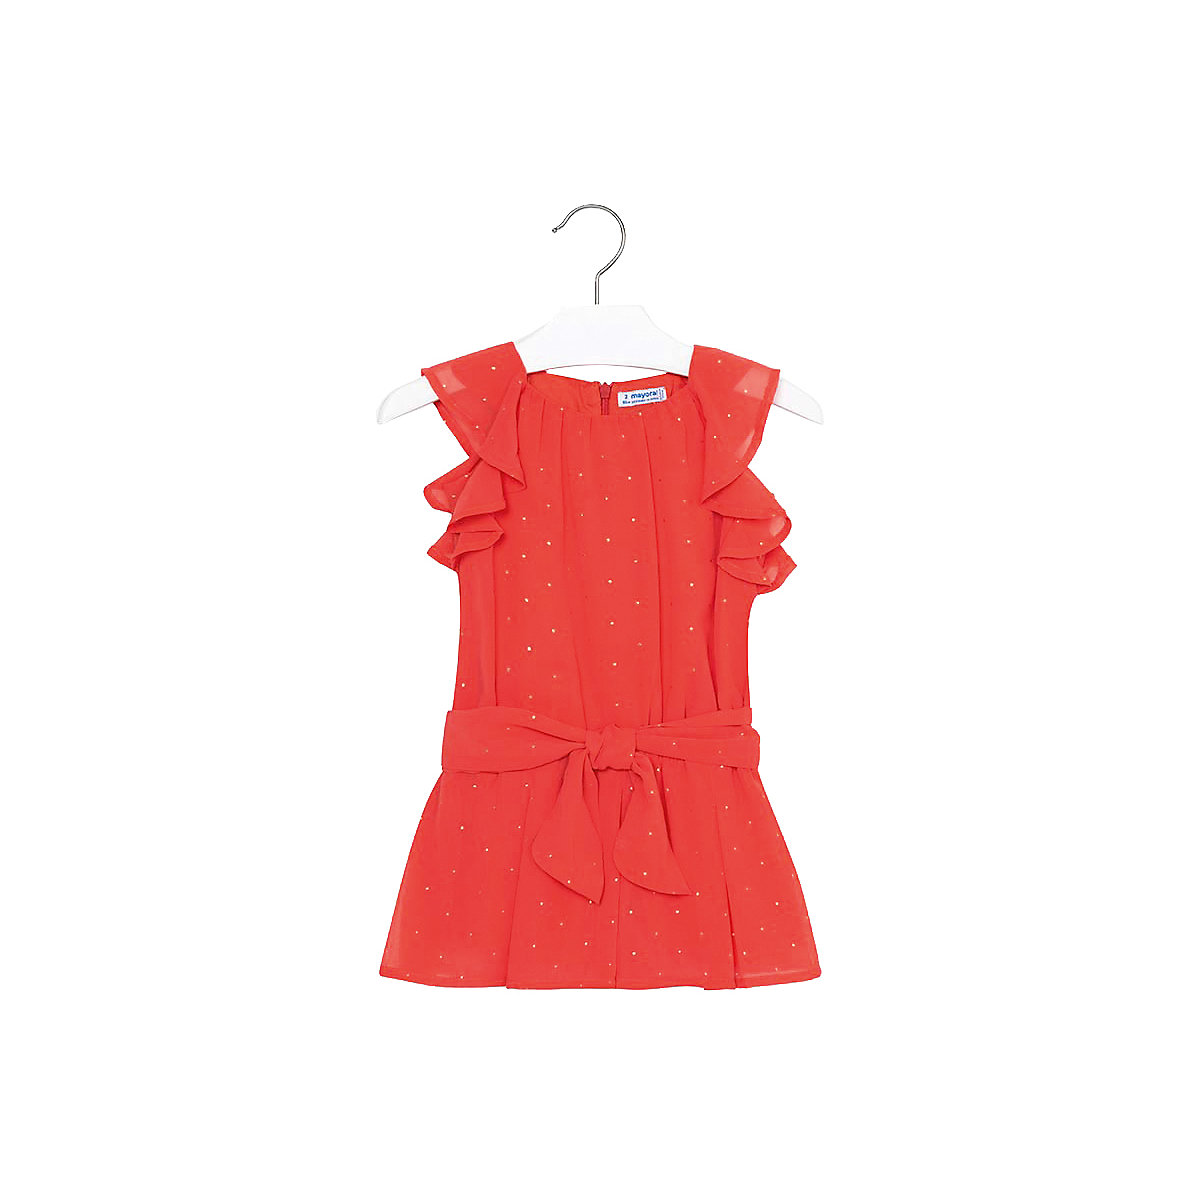 MAYORAL Dresses 10693139 Girl Children fitted pleated skirt Orange Polyester Casual Solid Knee-Length Sleeveless Sleeve